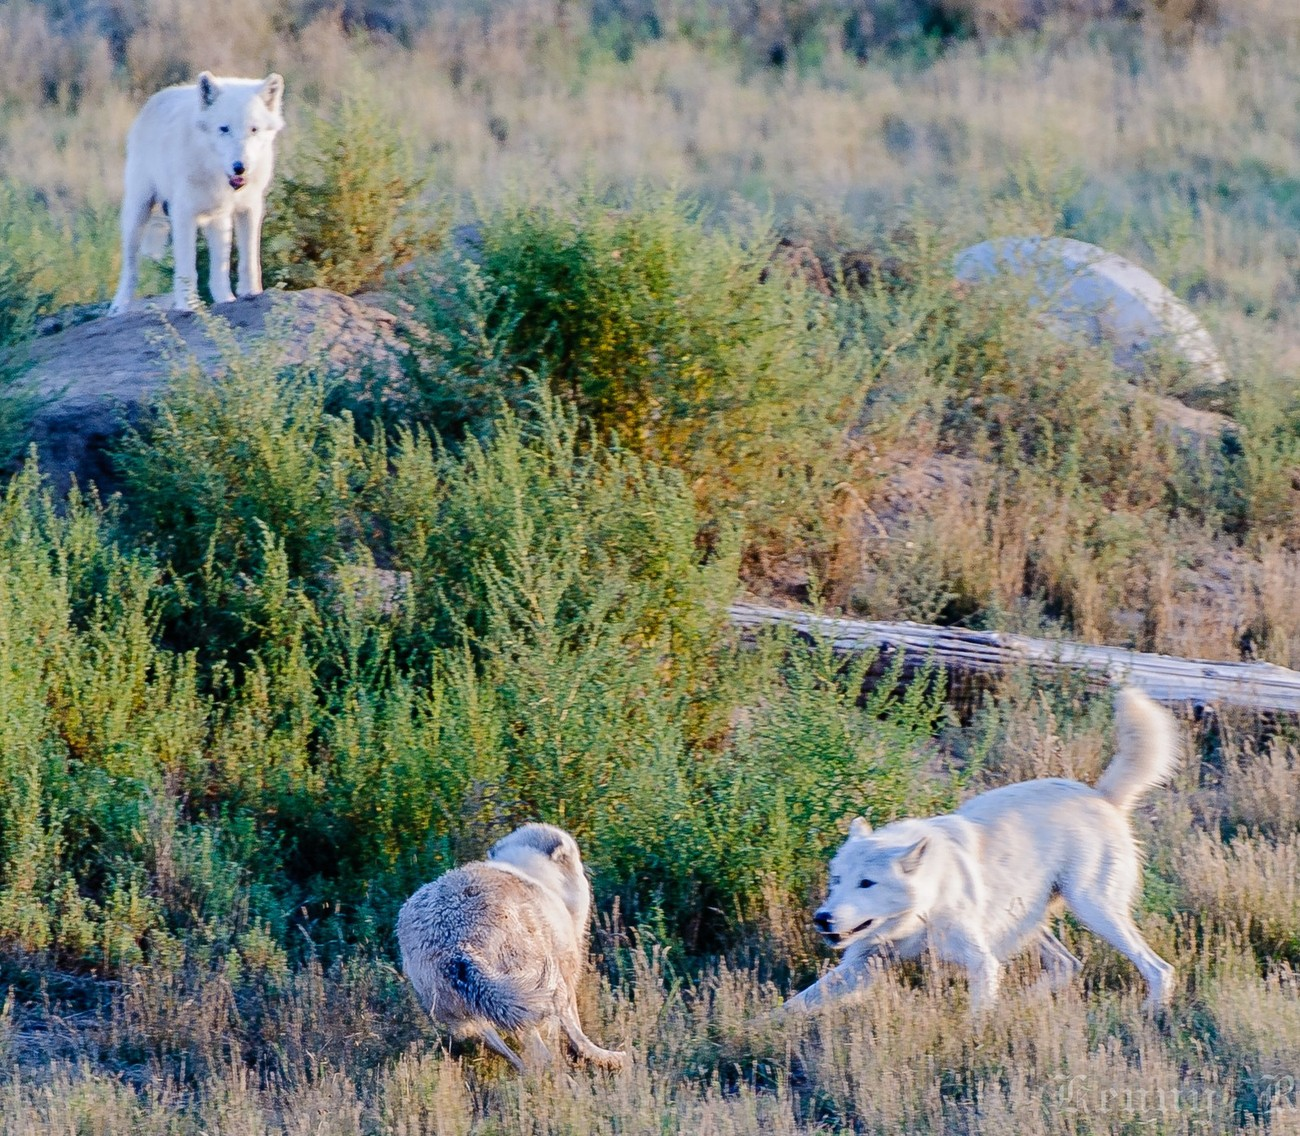 Wolves at play - Wild Animal Sanctuary - Colorado